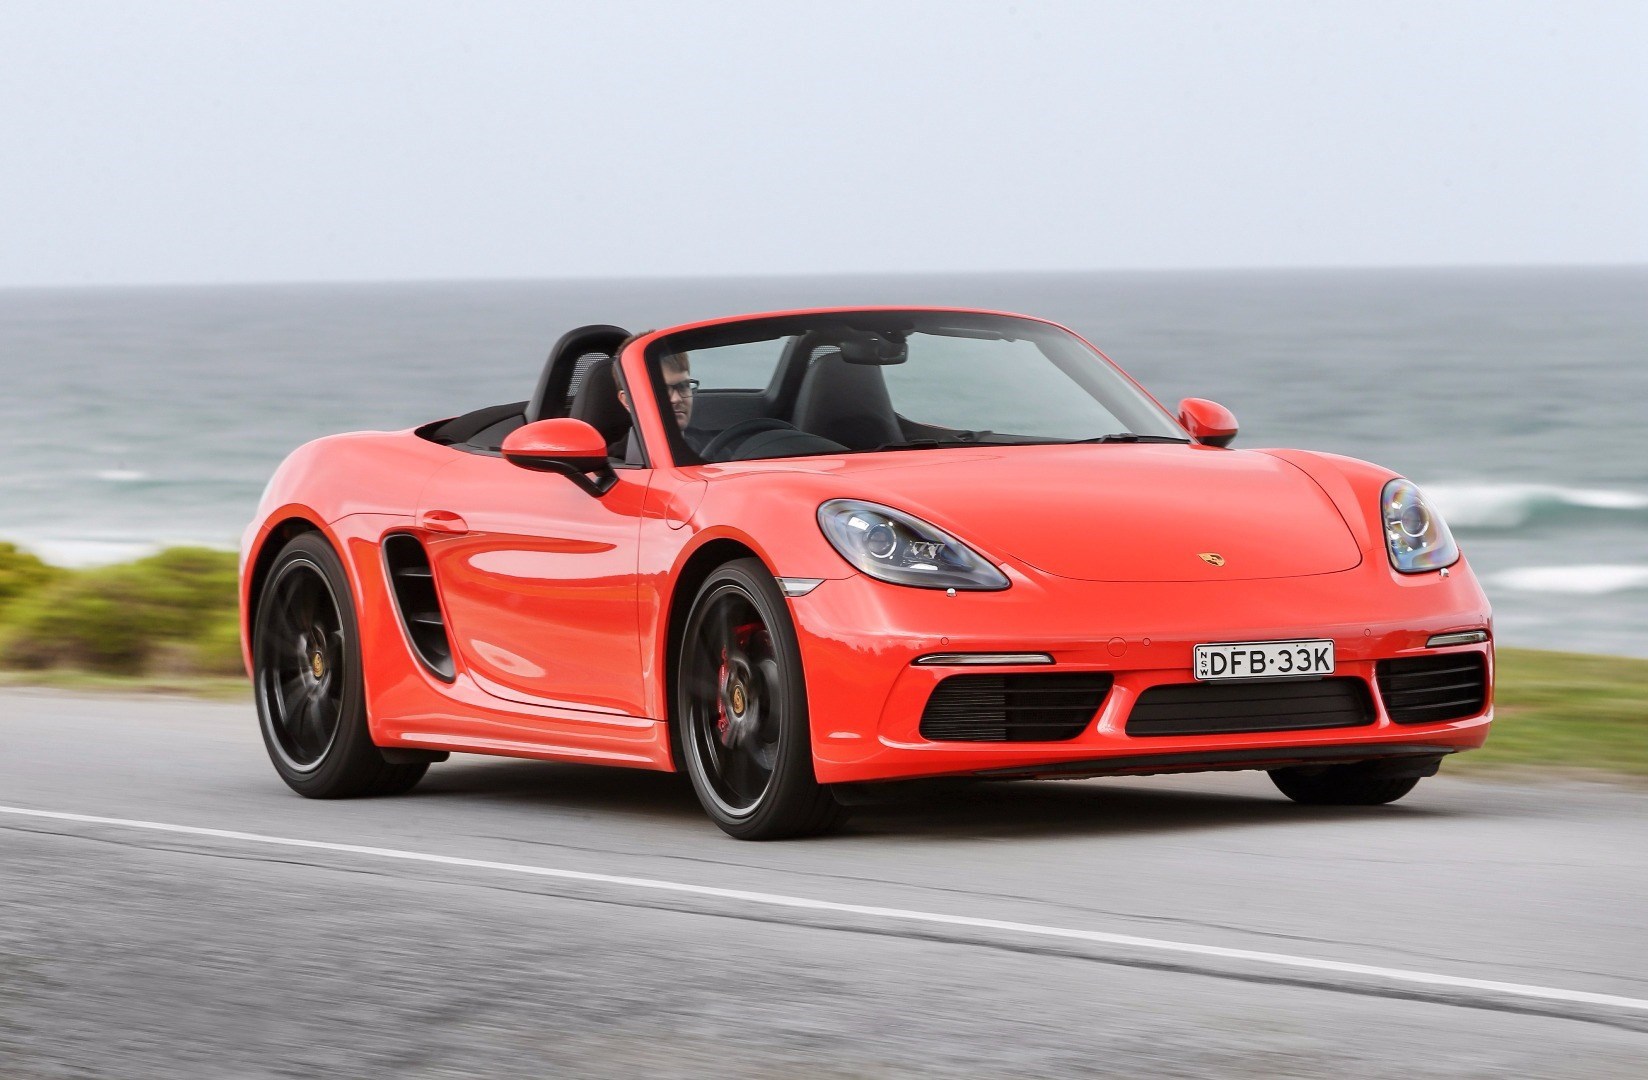 2016 Porsche 718 Boxster - First Drive Review Thumbnail